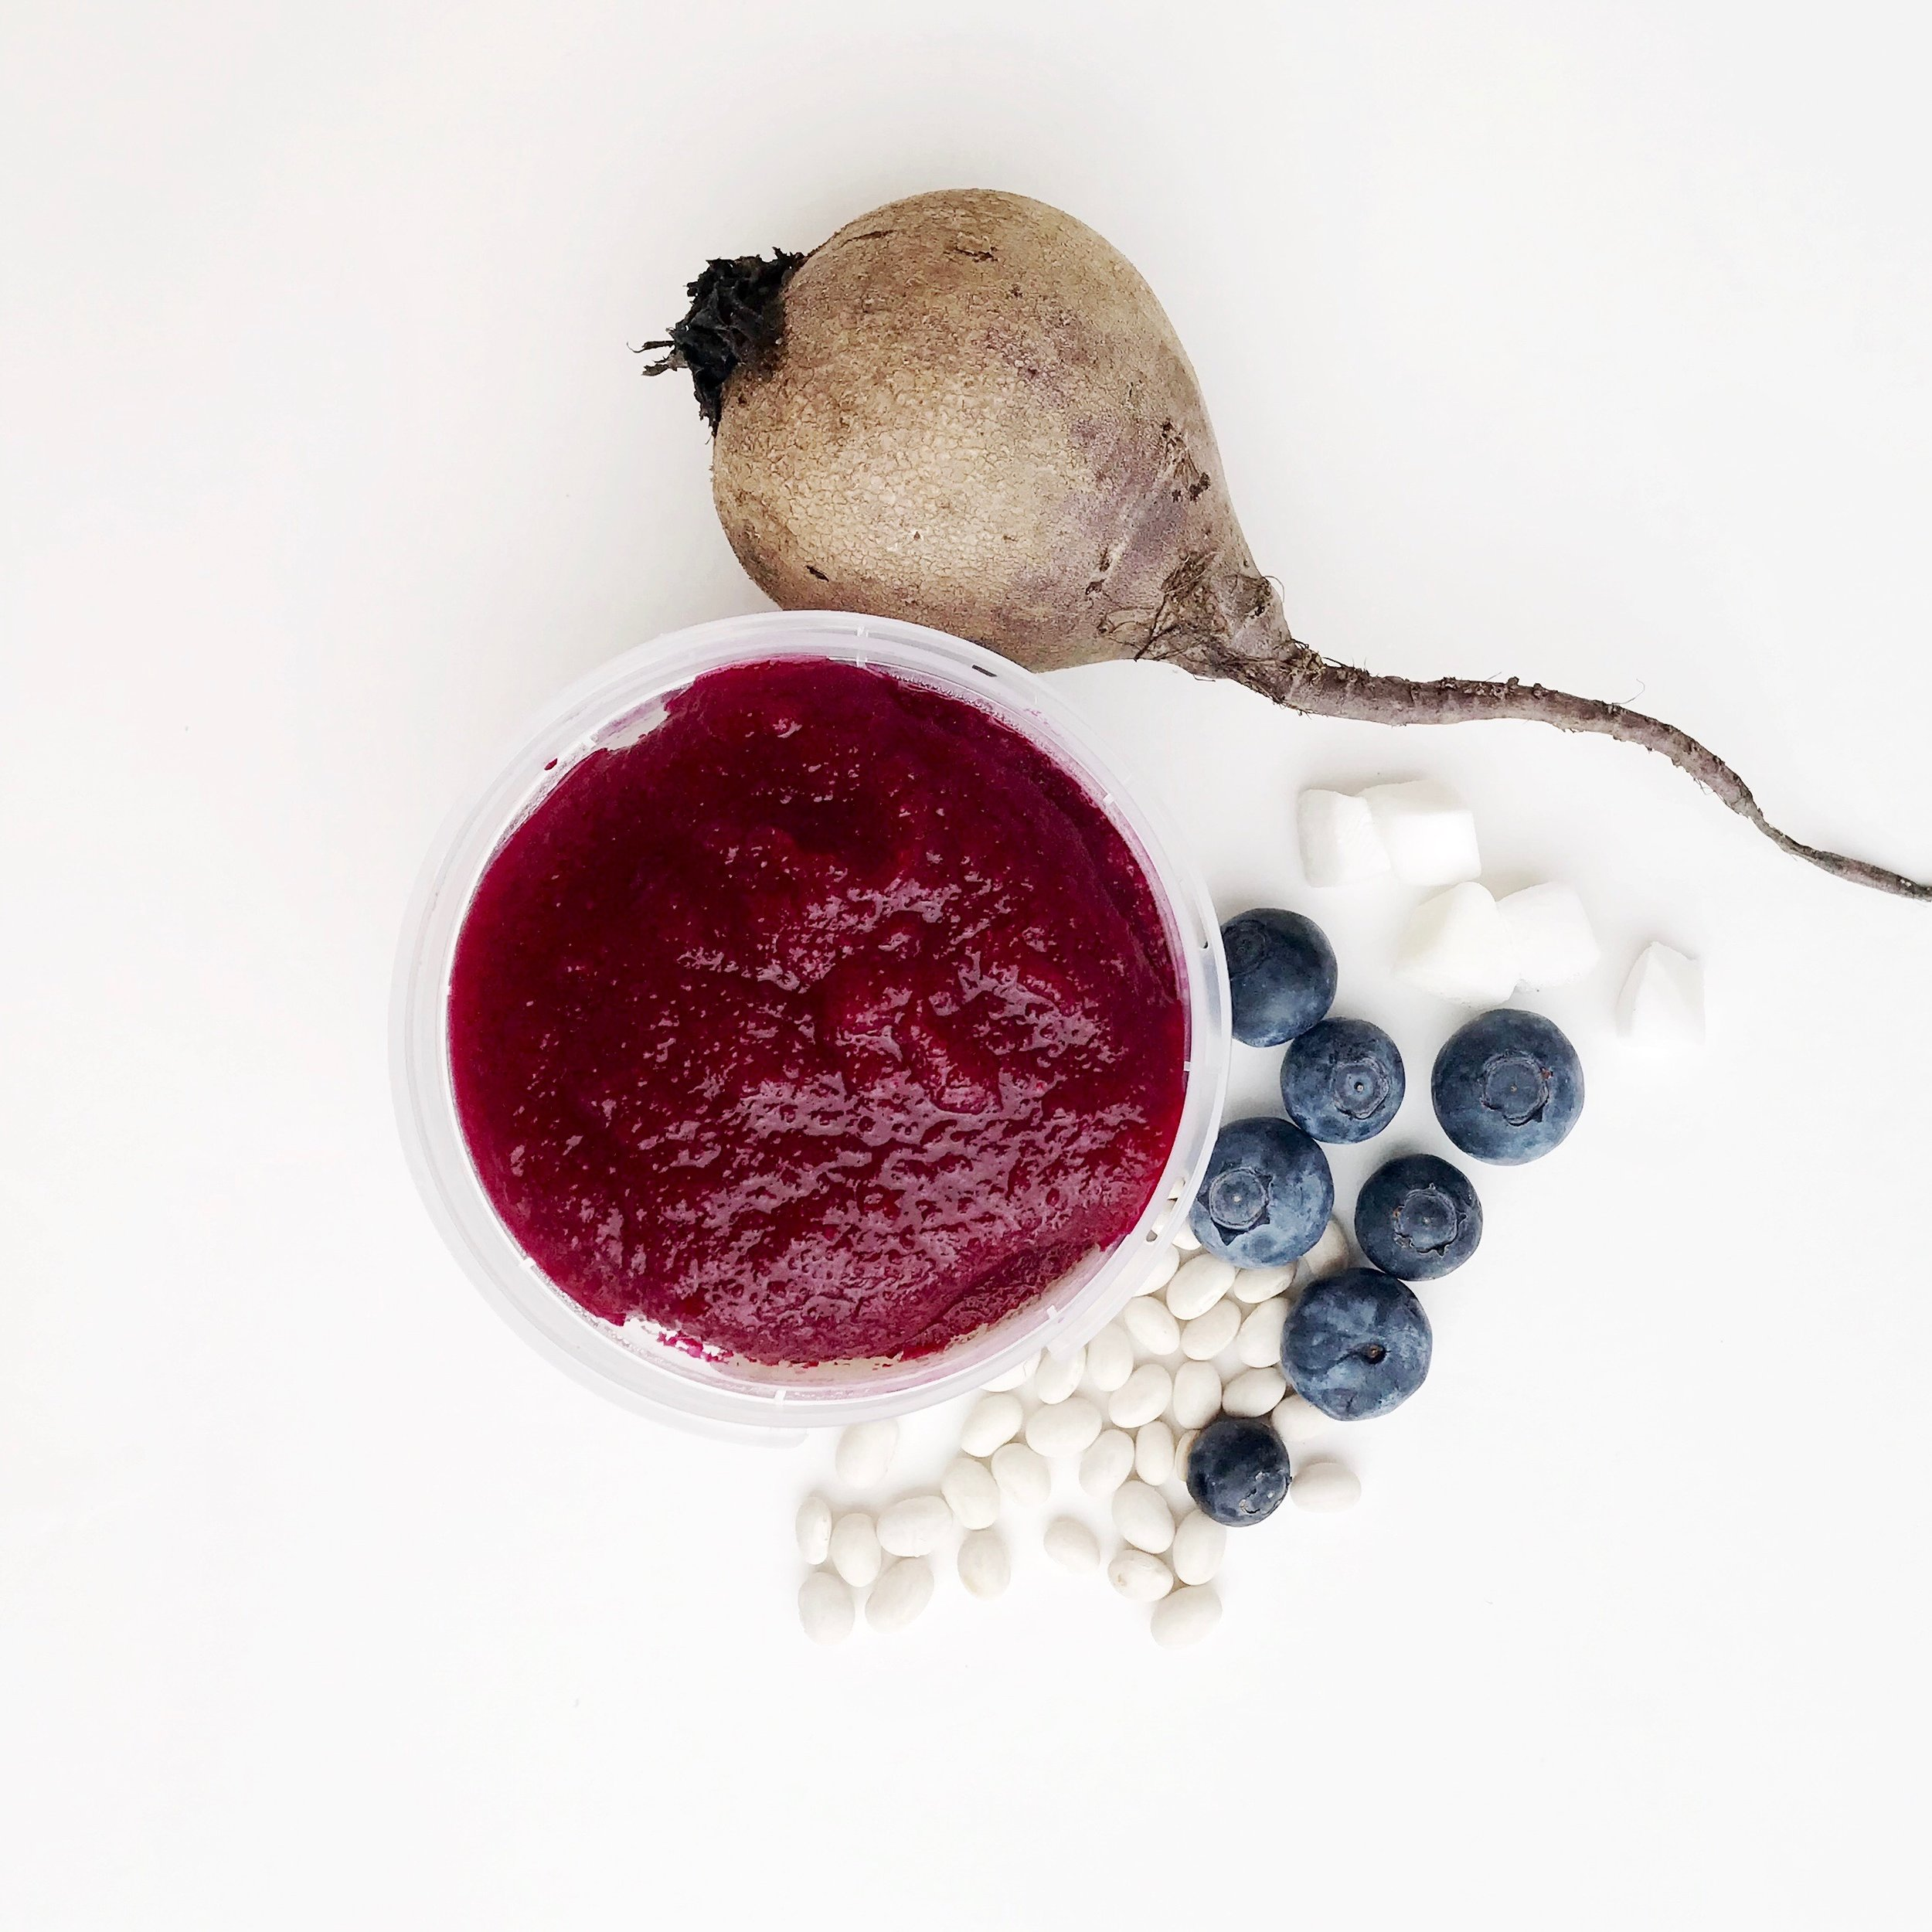 BLUEBERRY BEET BOOST - This delicious blend is high in antioxidants and beneficial plant compounds from both the blueberry and the beet to develop your little one's brain and heart. With a balance of protein from the white navy beans, this blend is wholeheartedly nourishing in every bite.